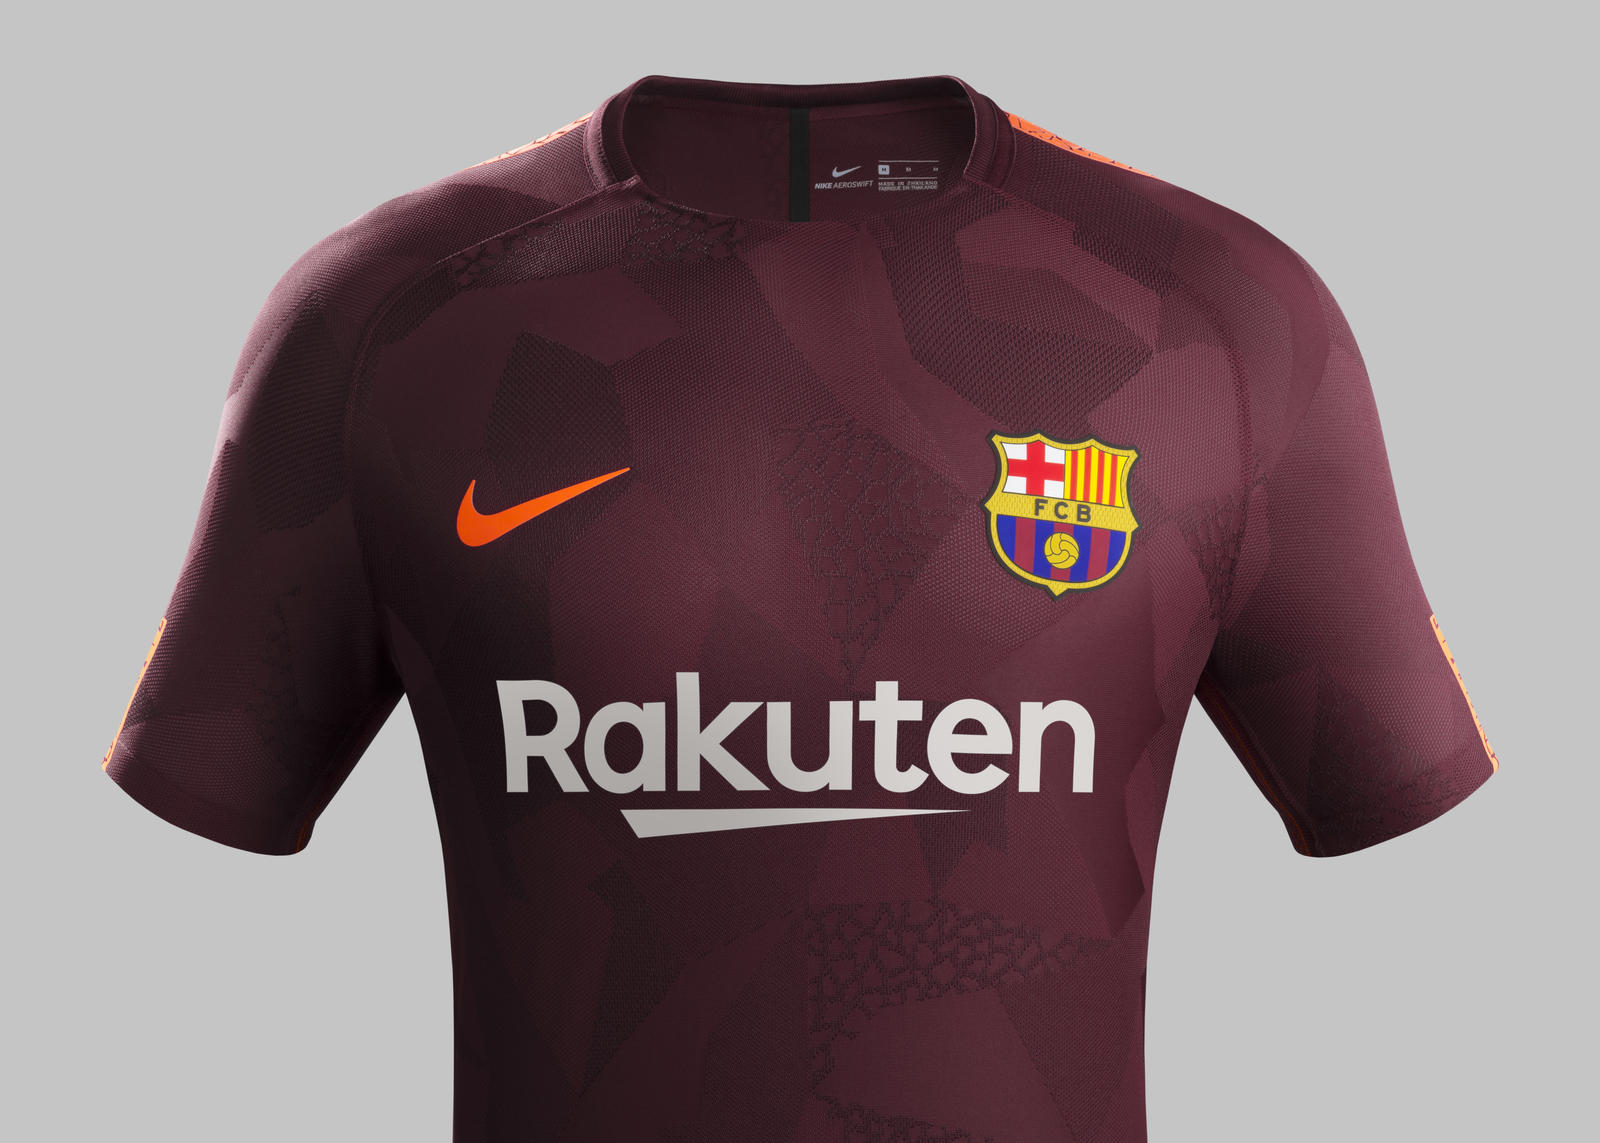 271892ba4 FC Barcelona Third Kit 2017-18 - Nike News